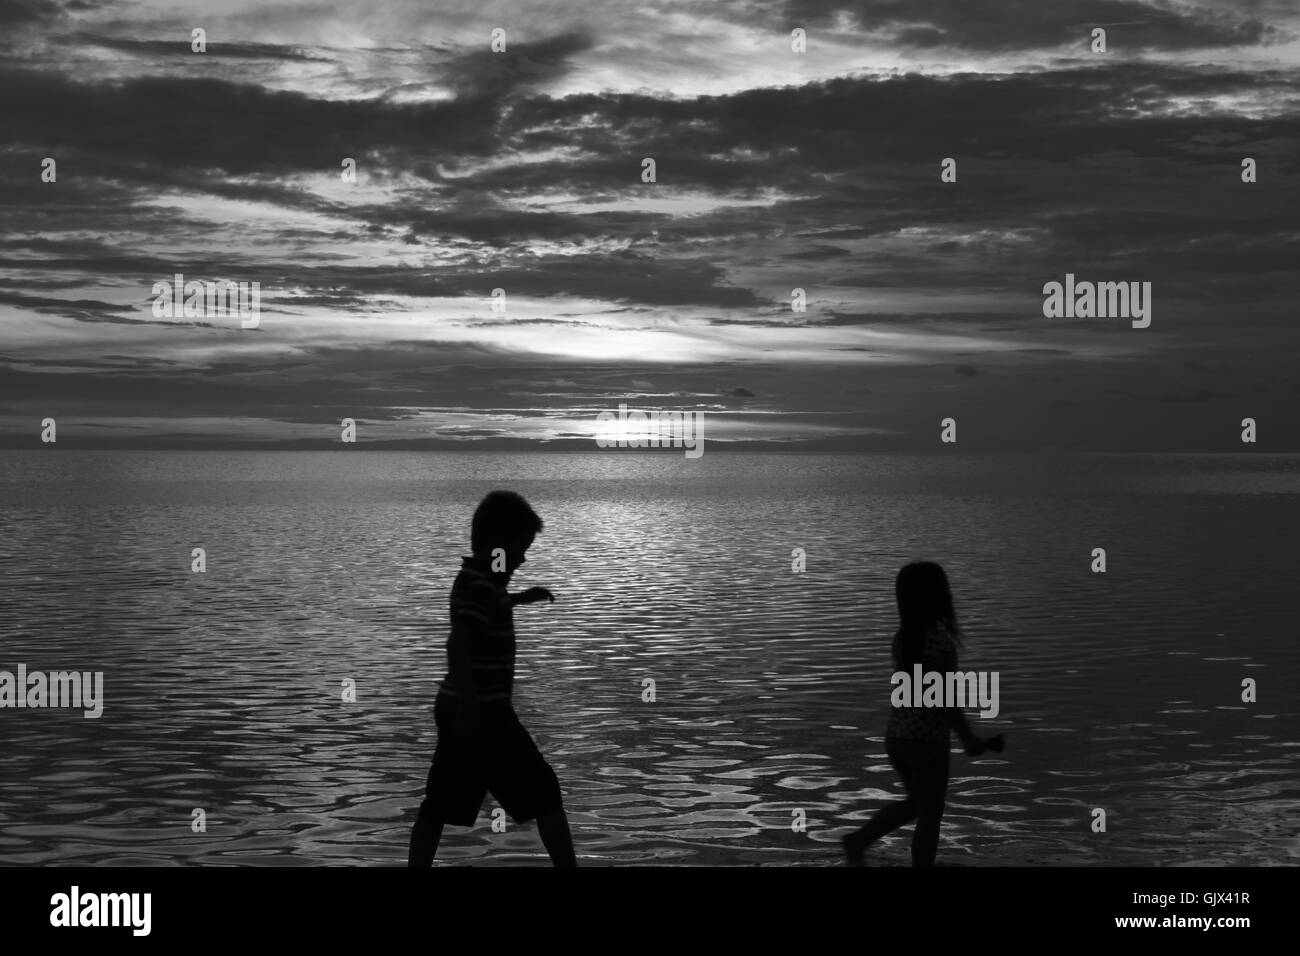 A beautiful sunset on a beach in Florida. Stock Photo